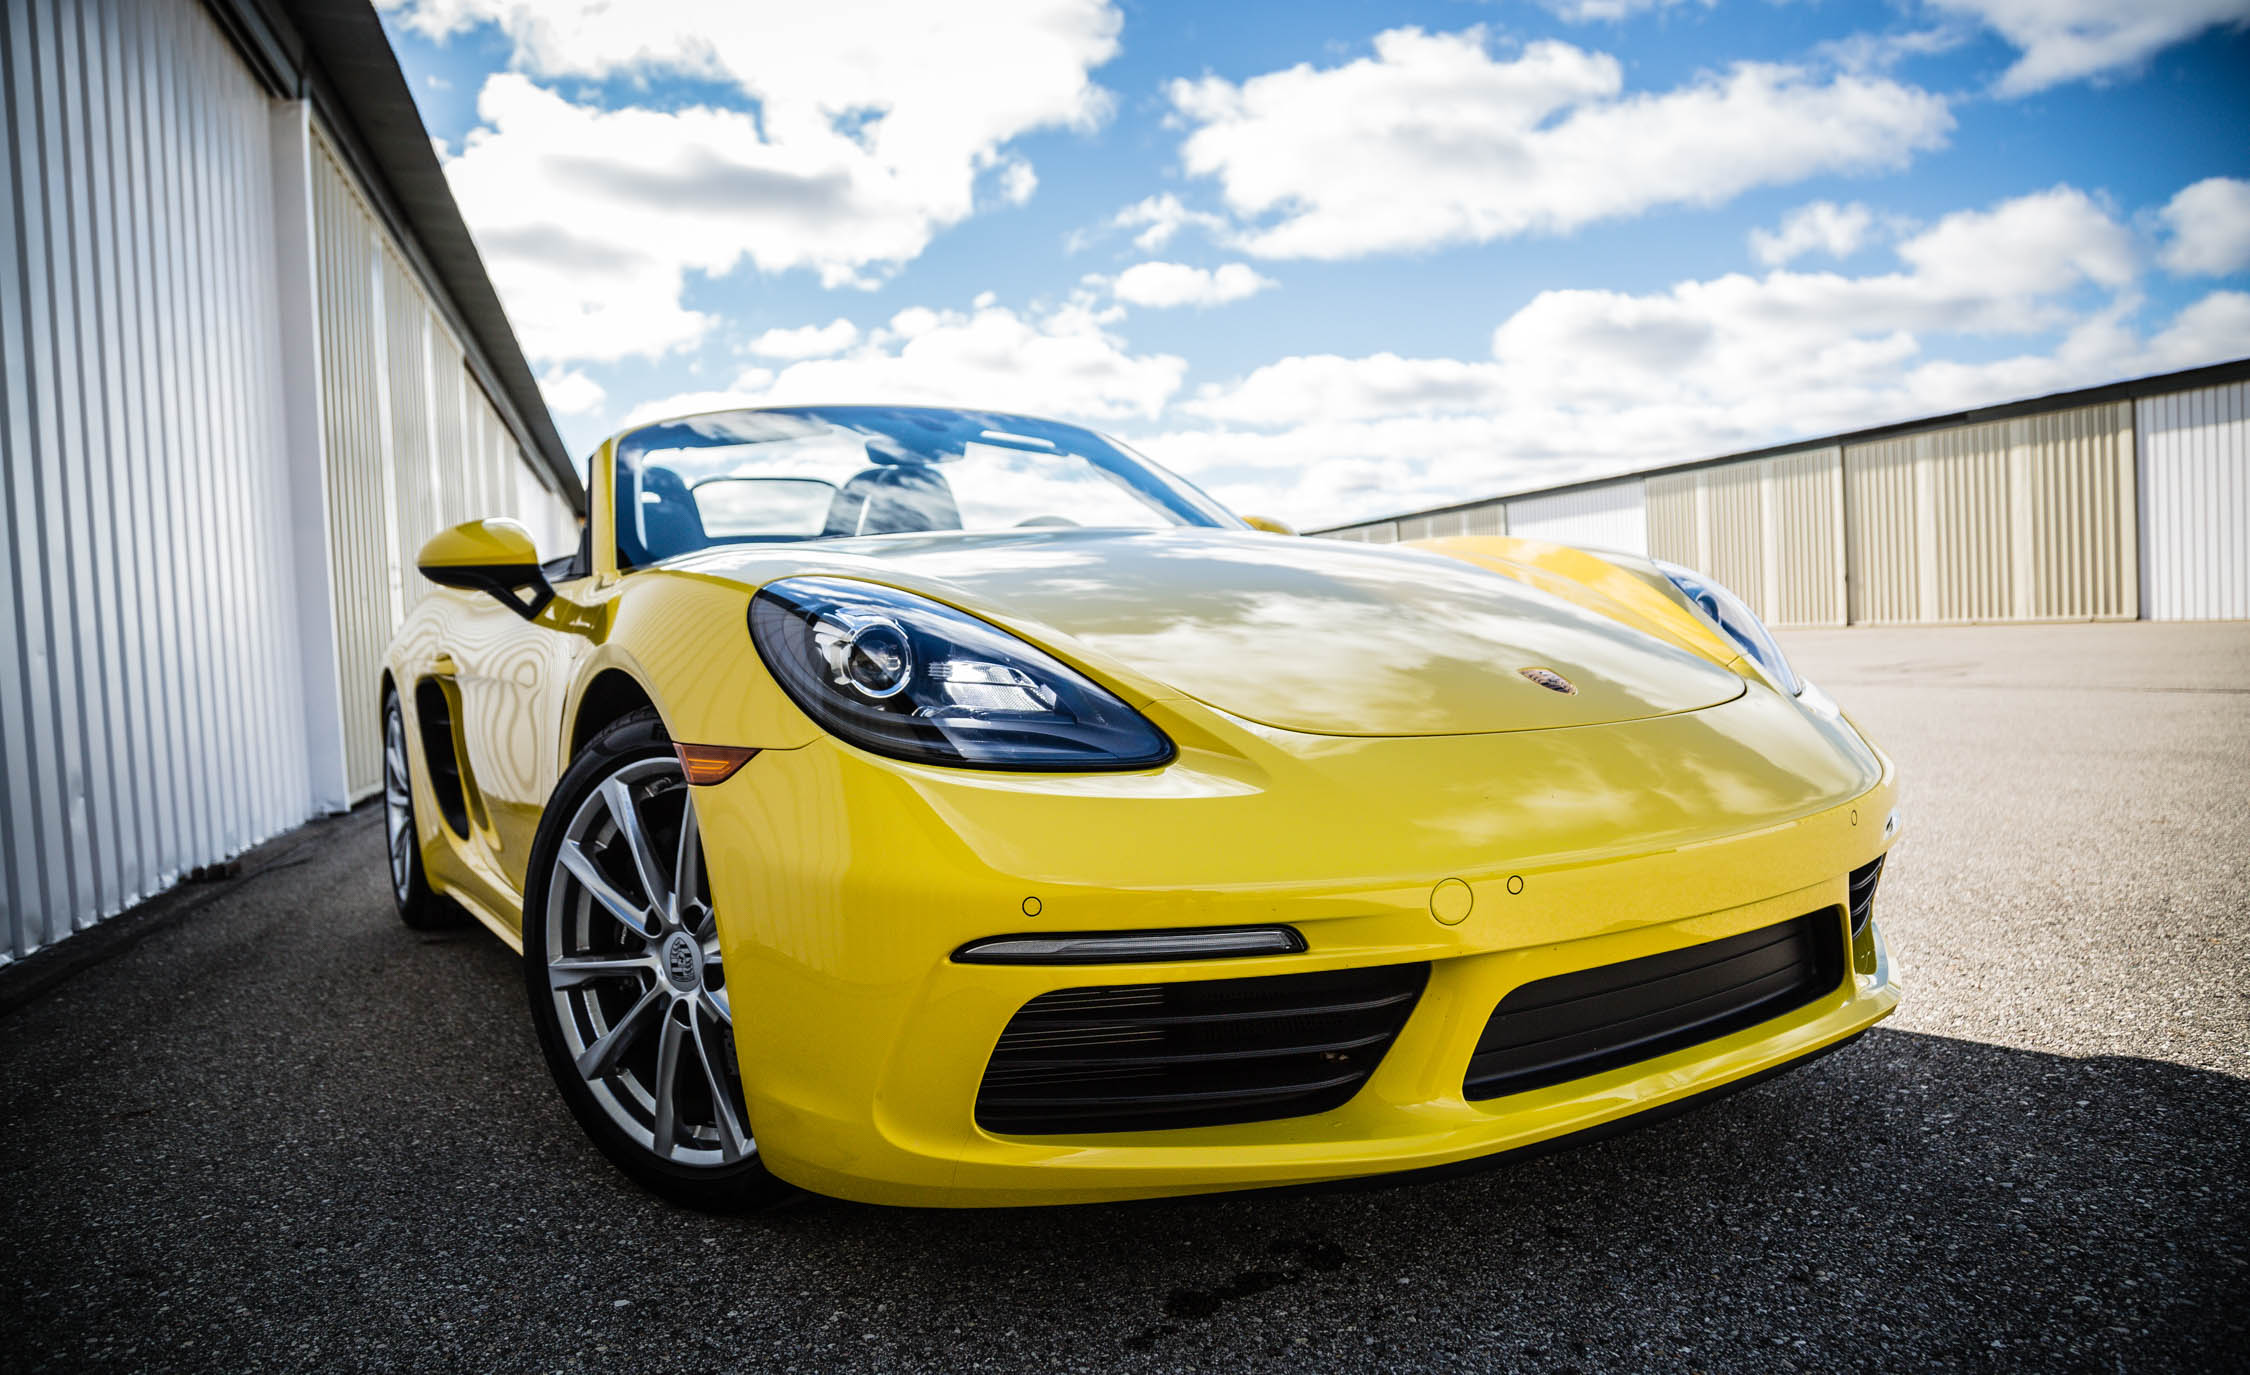 2017 Porsche 718 Boxster Exterior View Grille And Bumper (View 16 of 71)